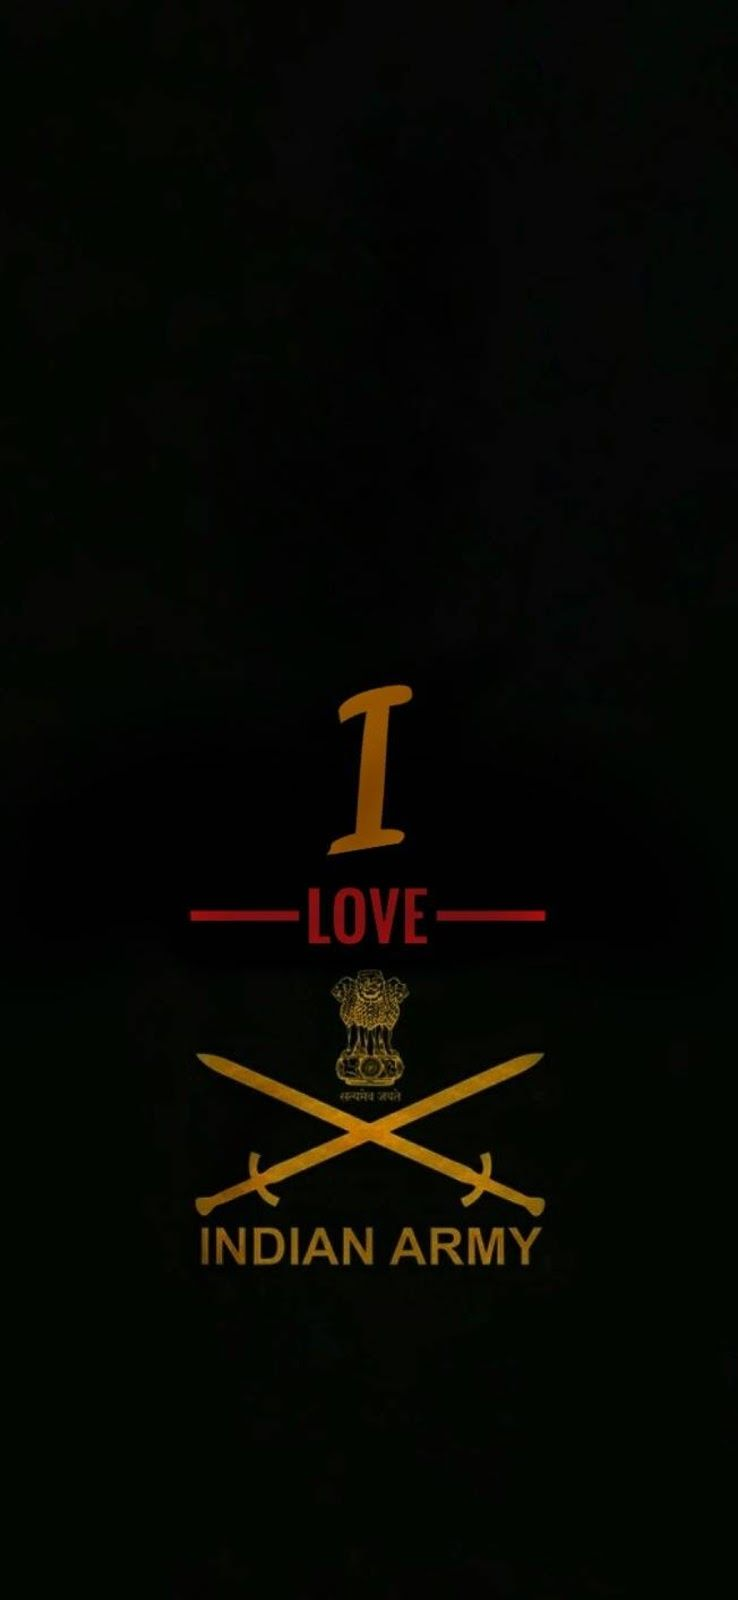 Pin By Denis Kulranjan On Funny Iphone Wallpaper In 2020 Indian Army Wallpapers Army Wallpaper Happy Independence Day India